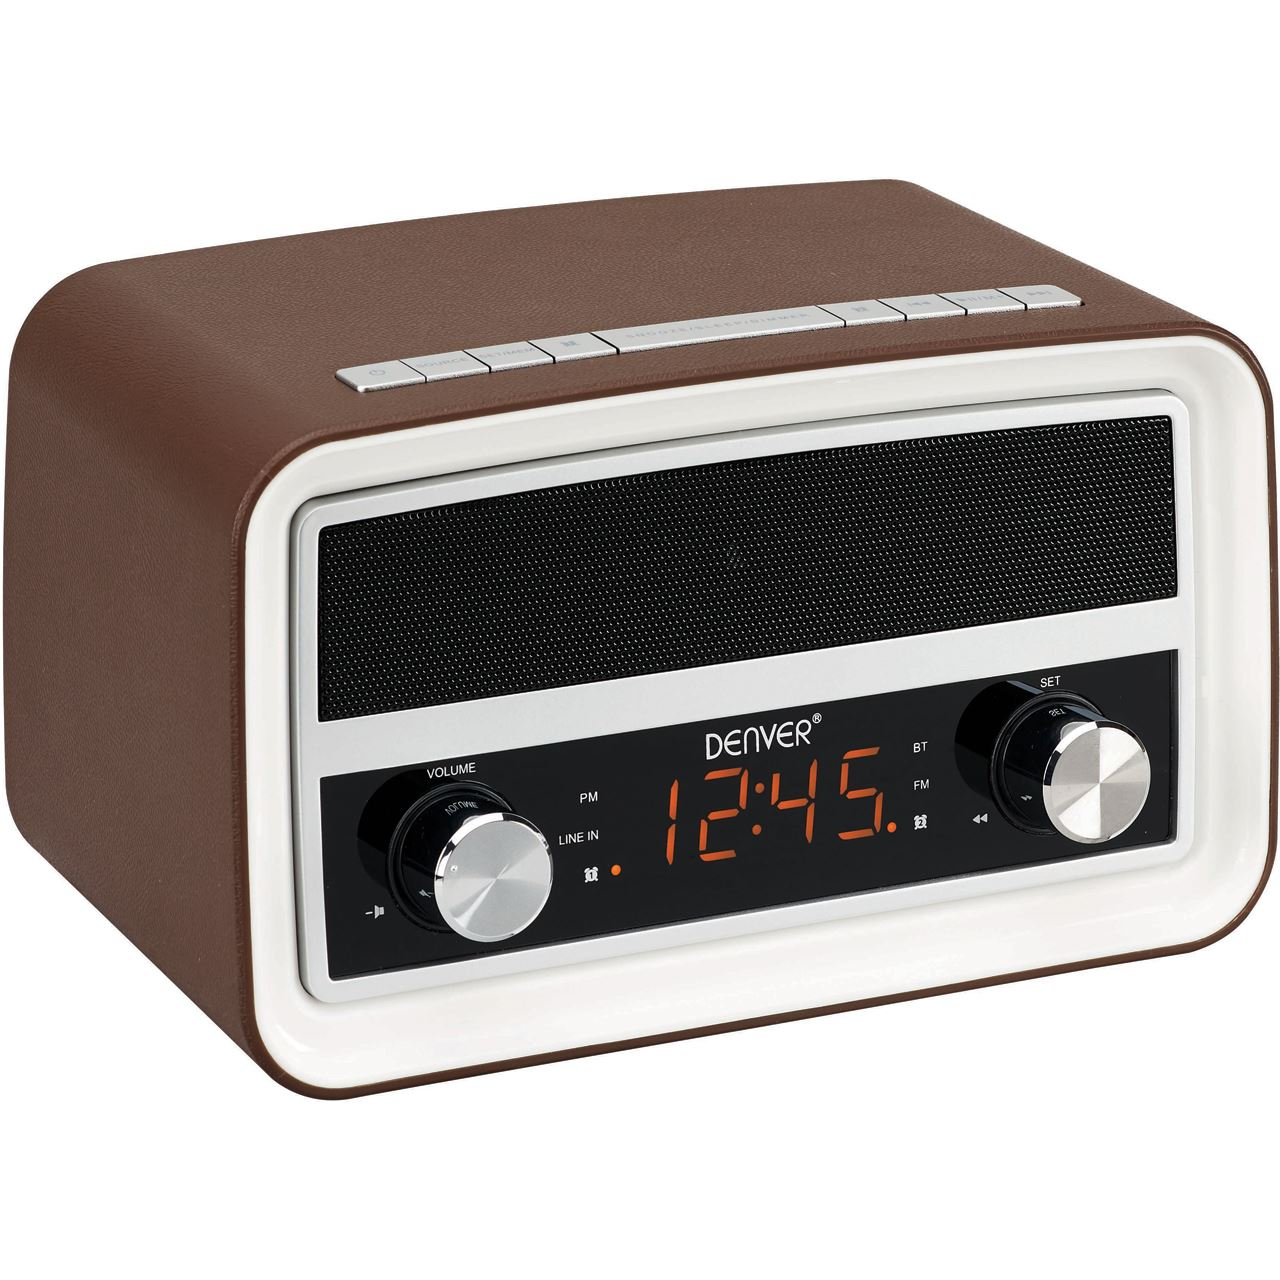 denver crb 619 uhrenradio mit bluetooth braun radios speichermodule ssds. Black Bedroom Furniture Sets. Home Design Ideas